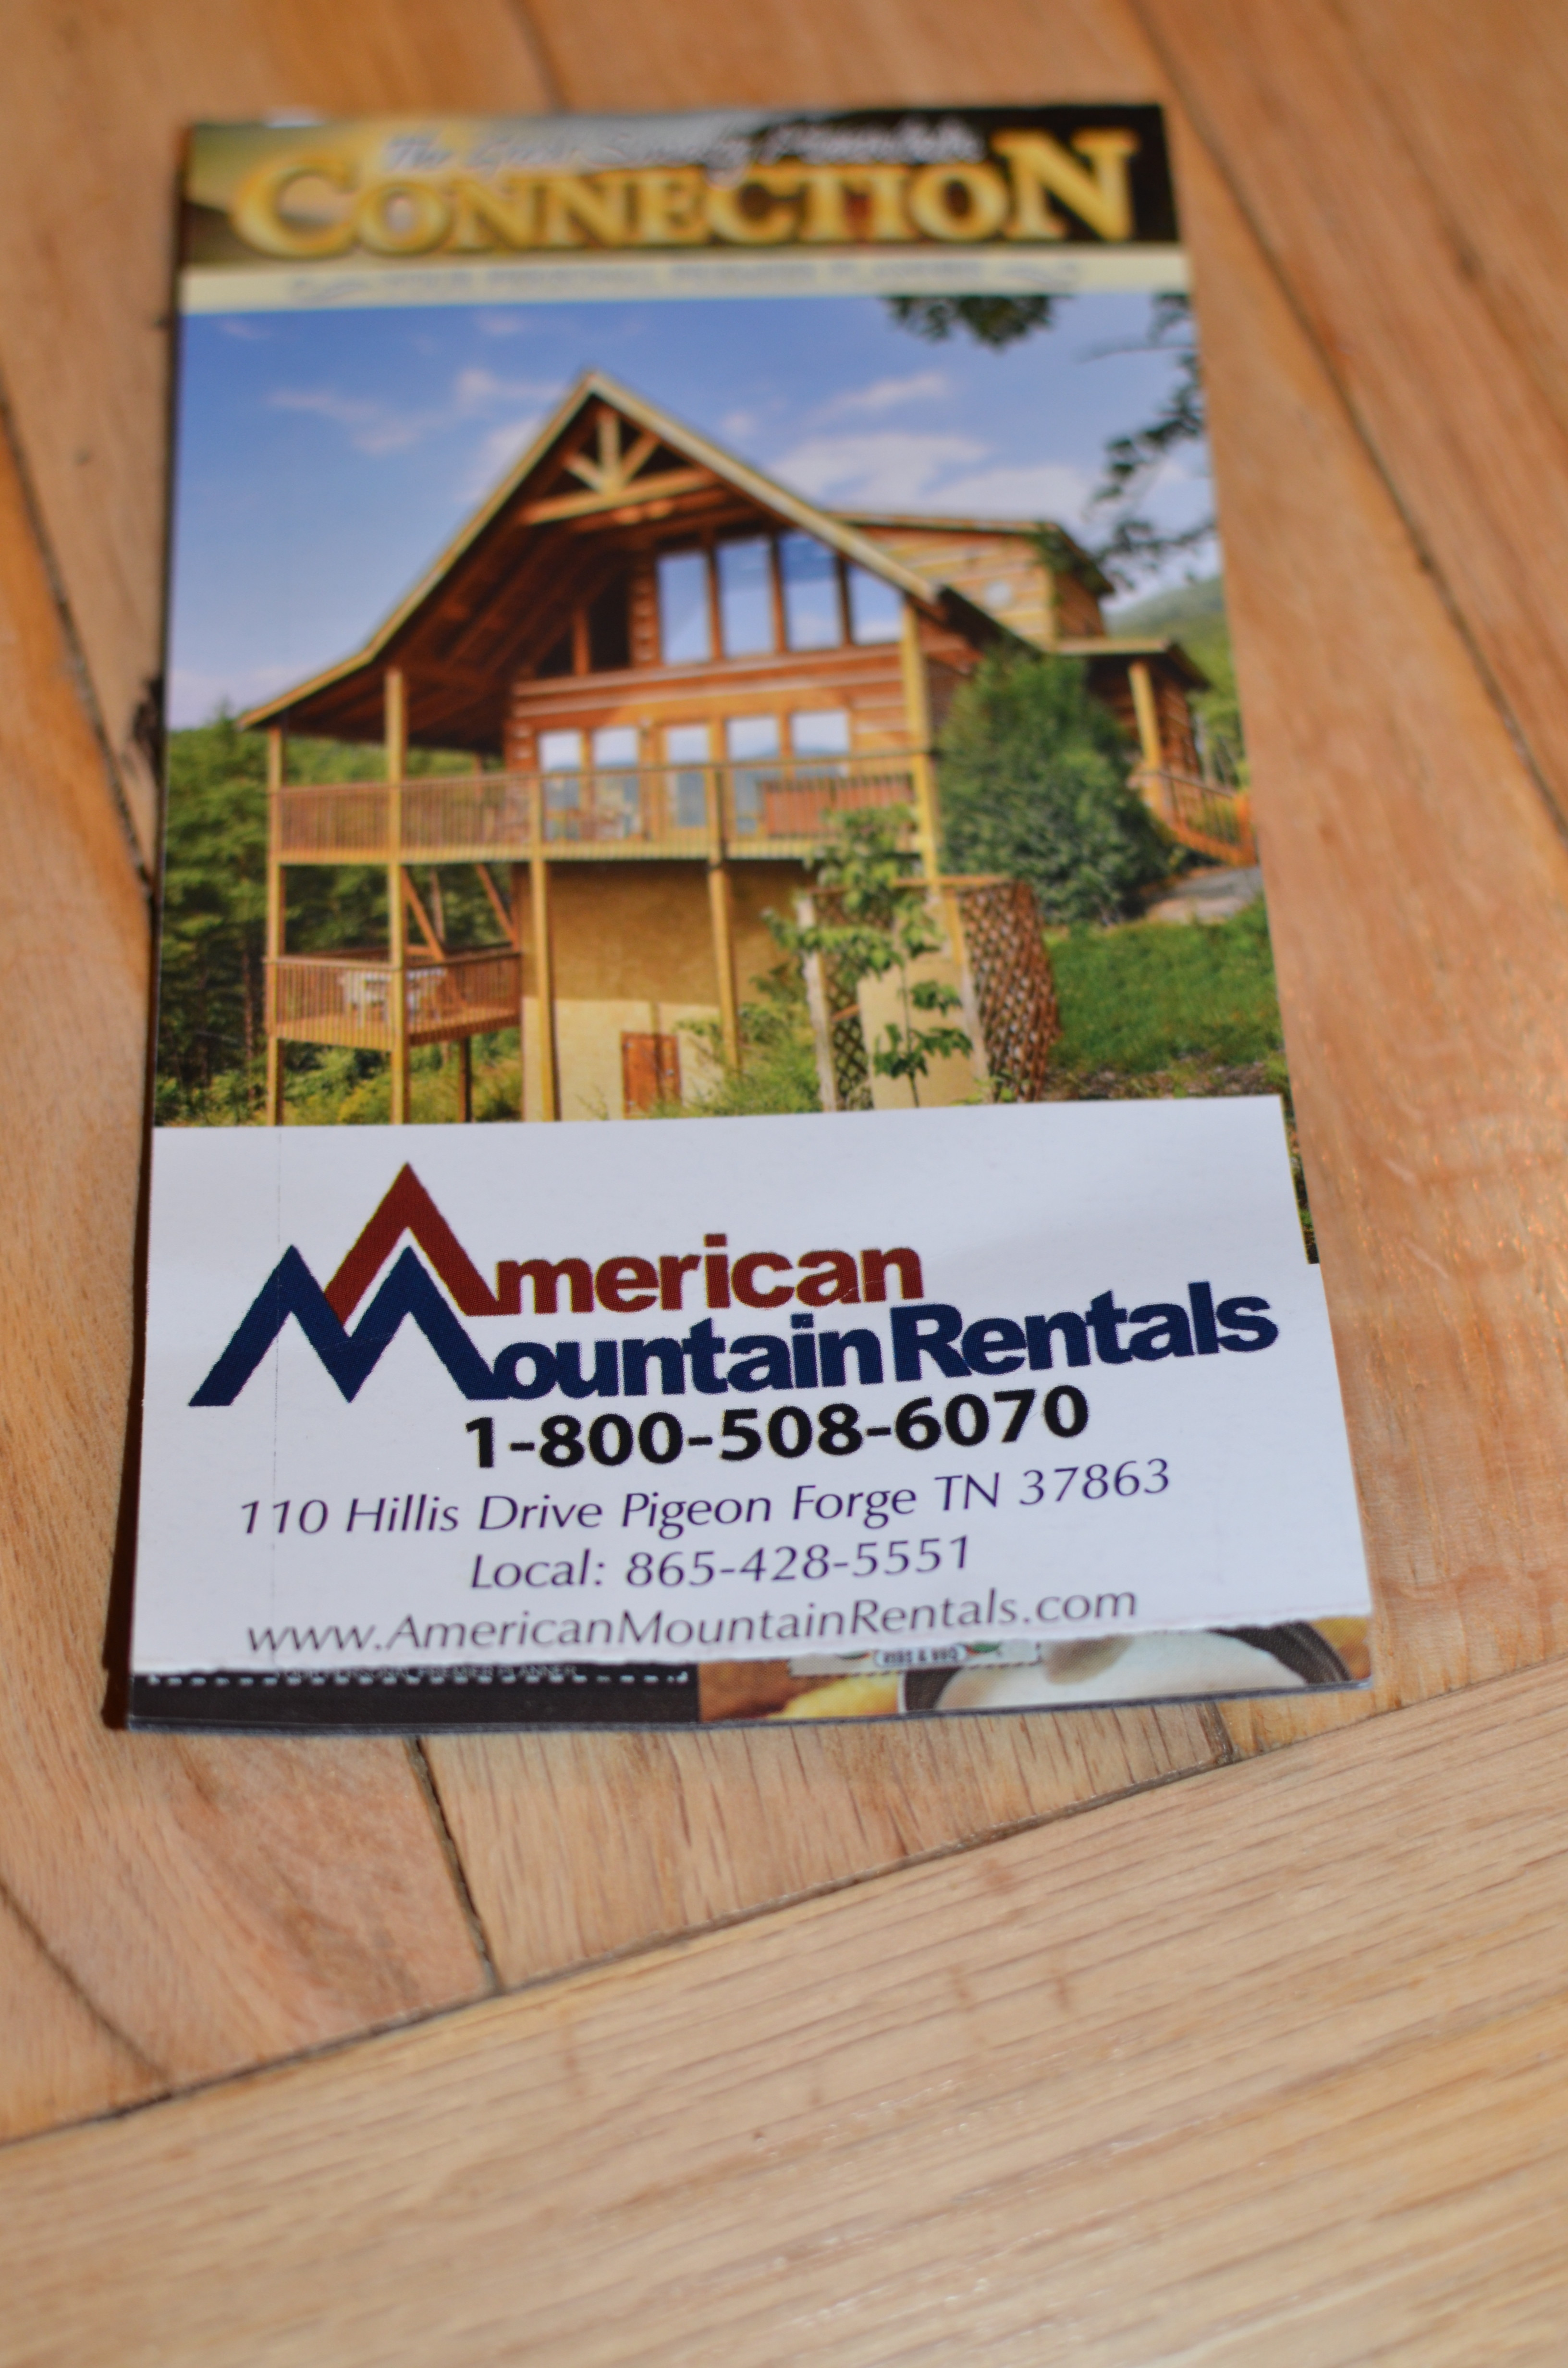 minute homes last cabin vacation cabins cook img rentals forest edited cottages